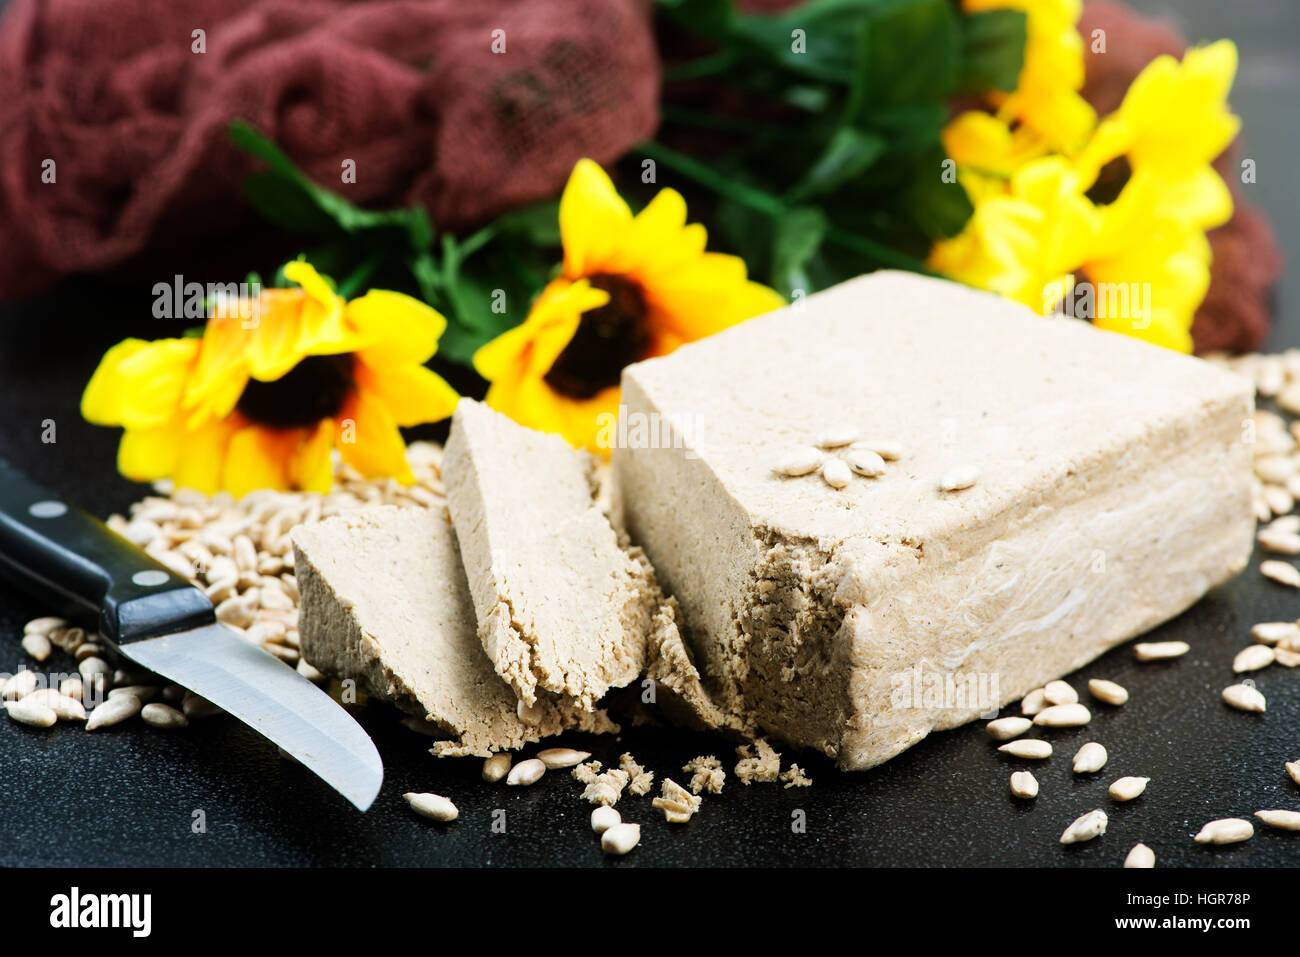 halva on plate and on a table - Stock Image